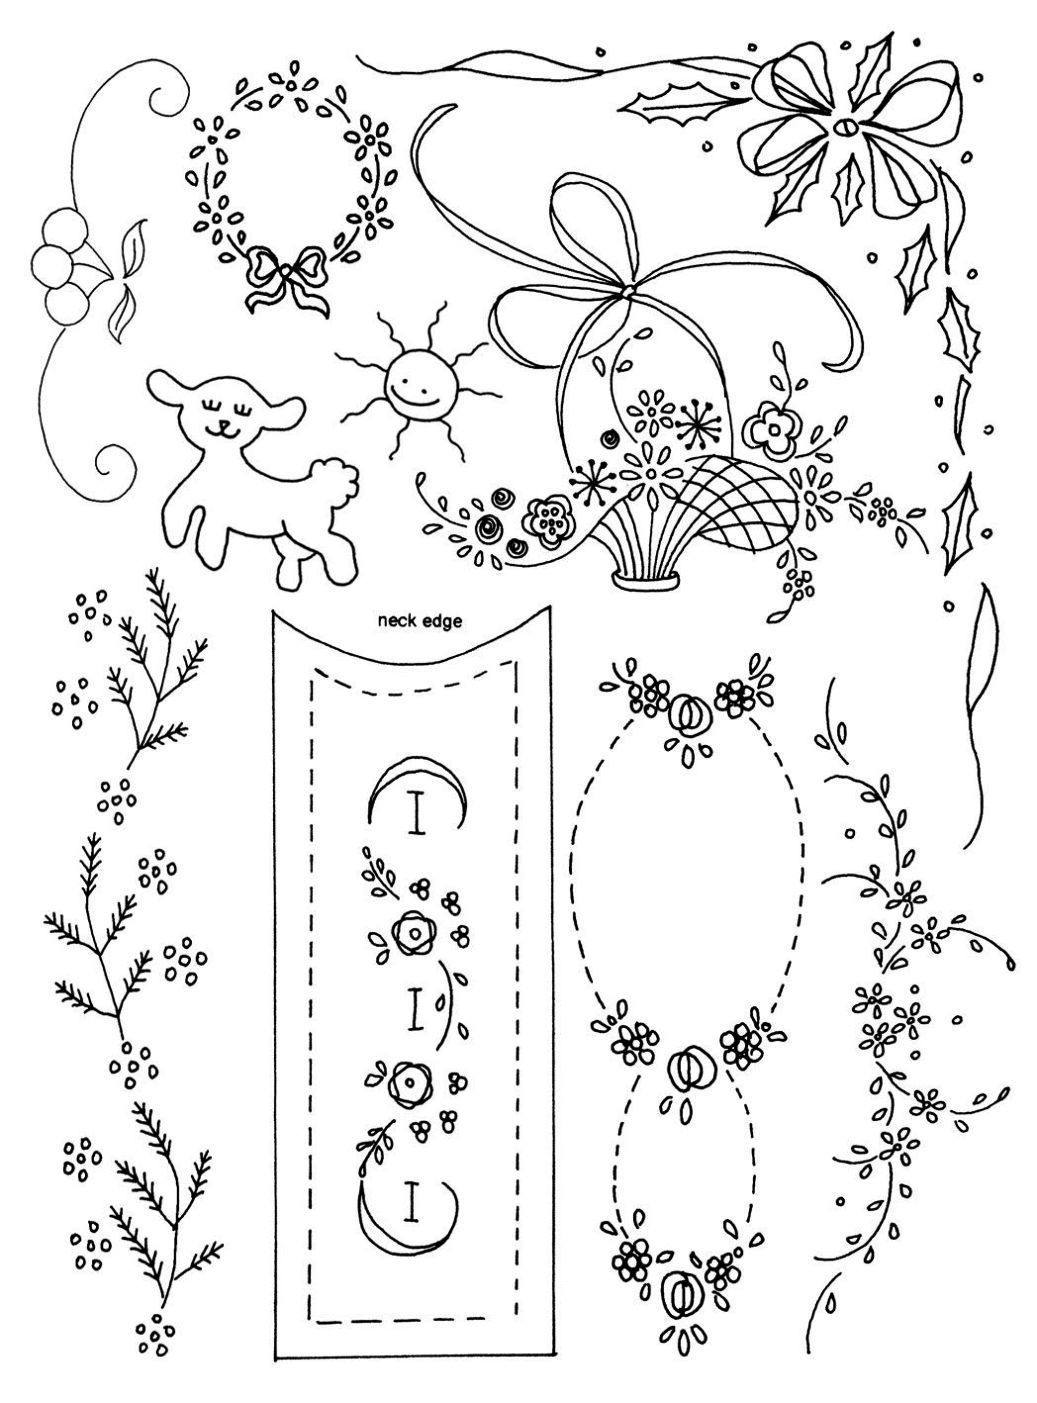 Classic embroidery designs set one is a collection of over